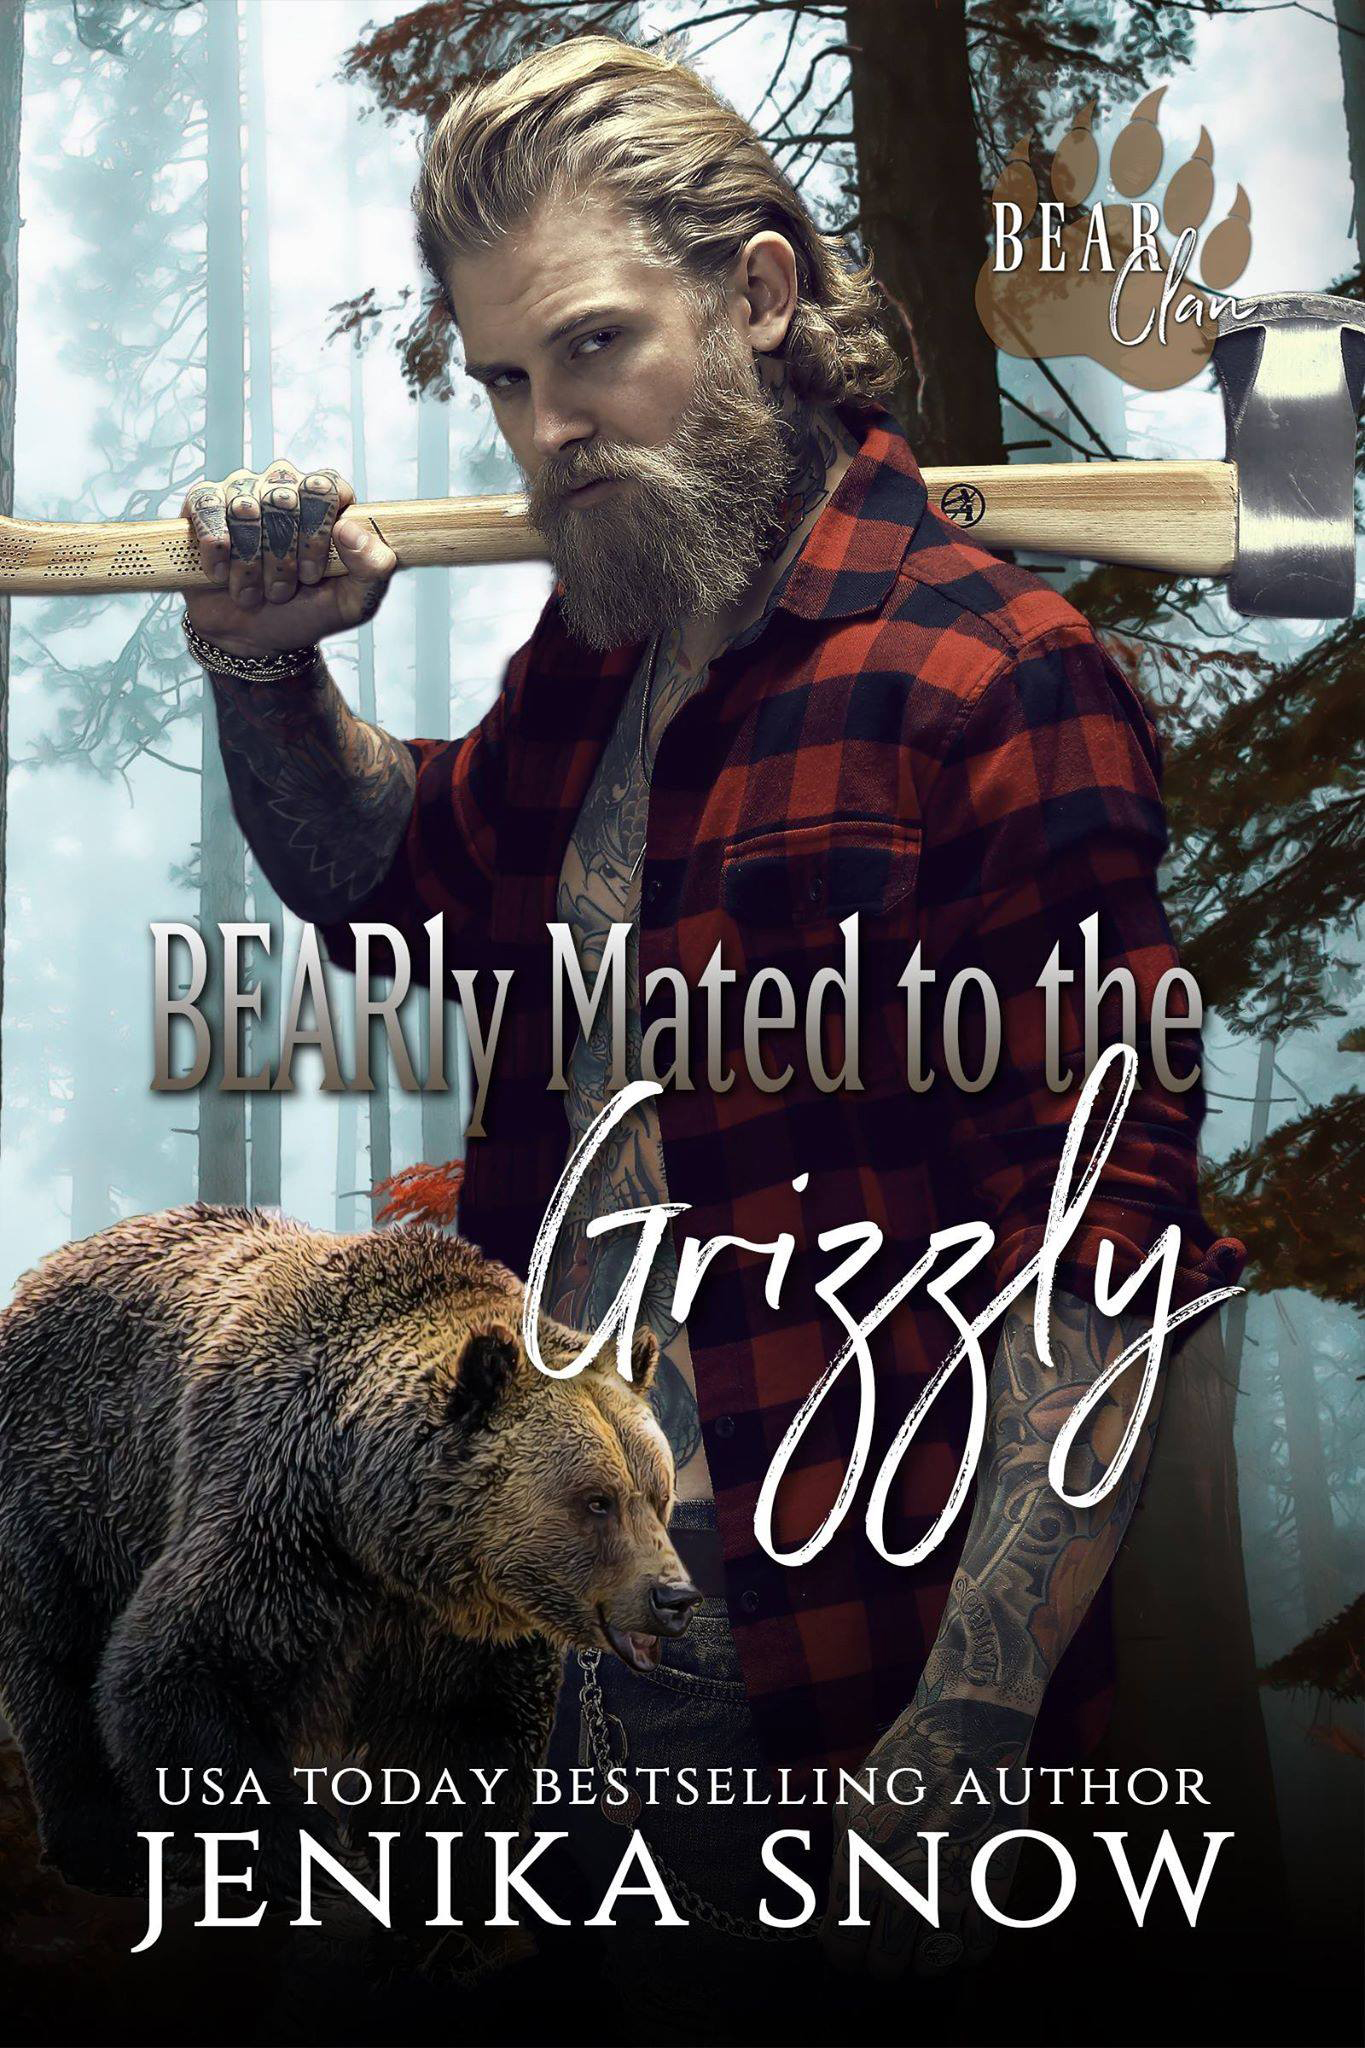 BEARLY MATED TO THE GRIZZLY